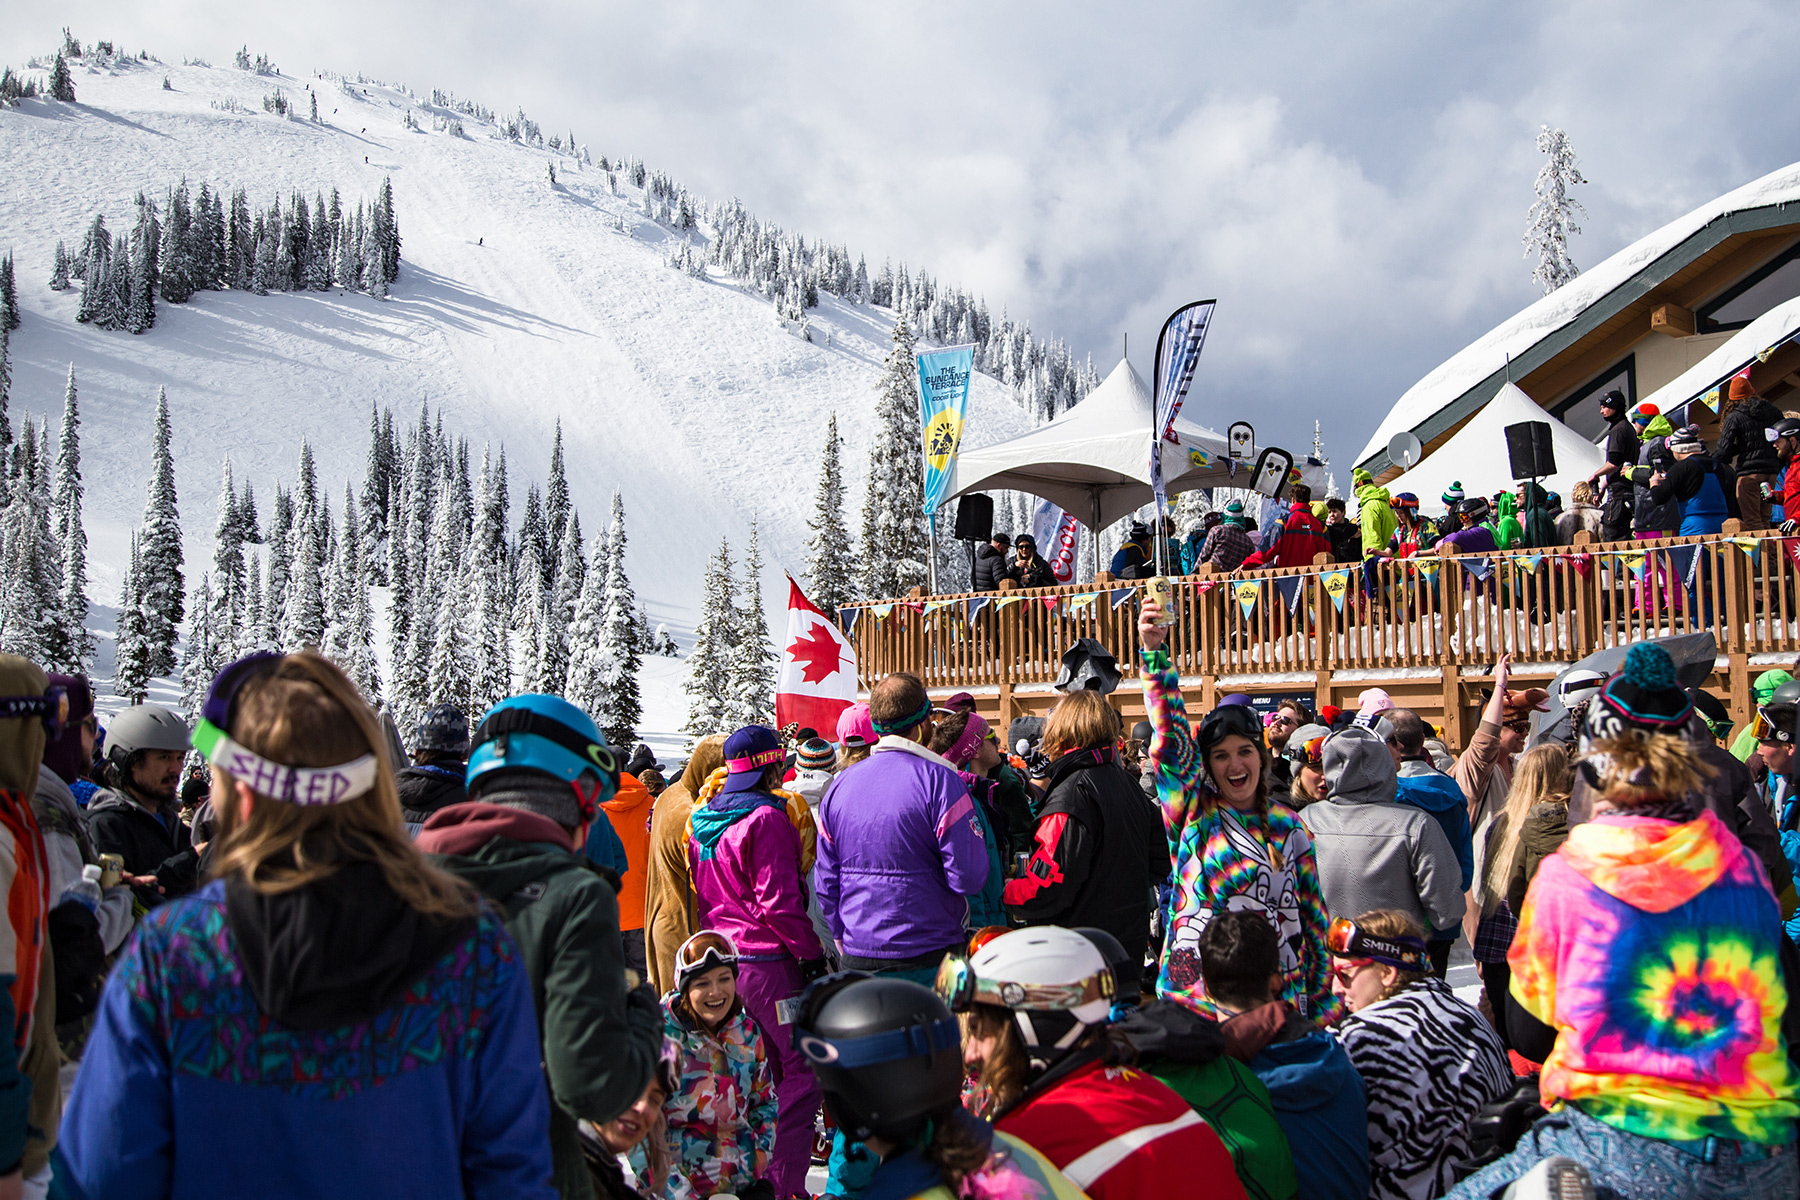 Snowbombing Canada at Sun Peaks Resort